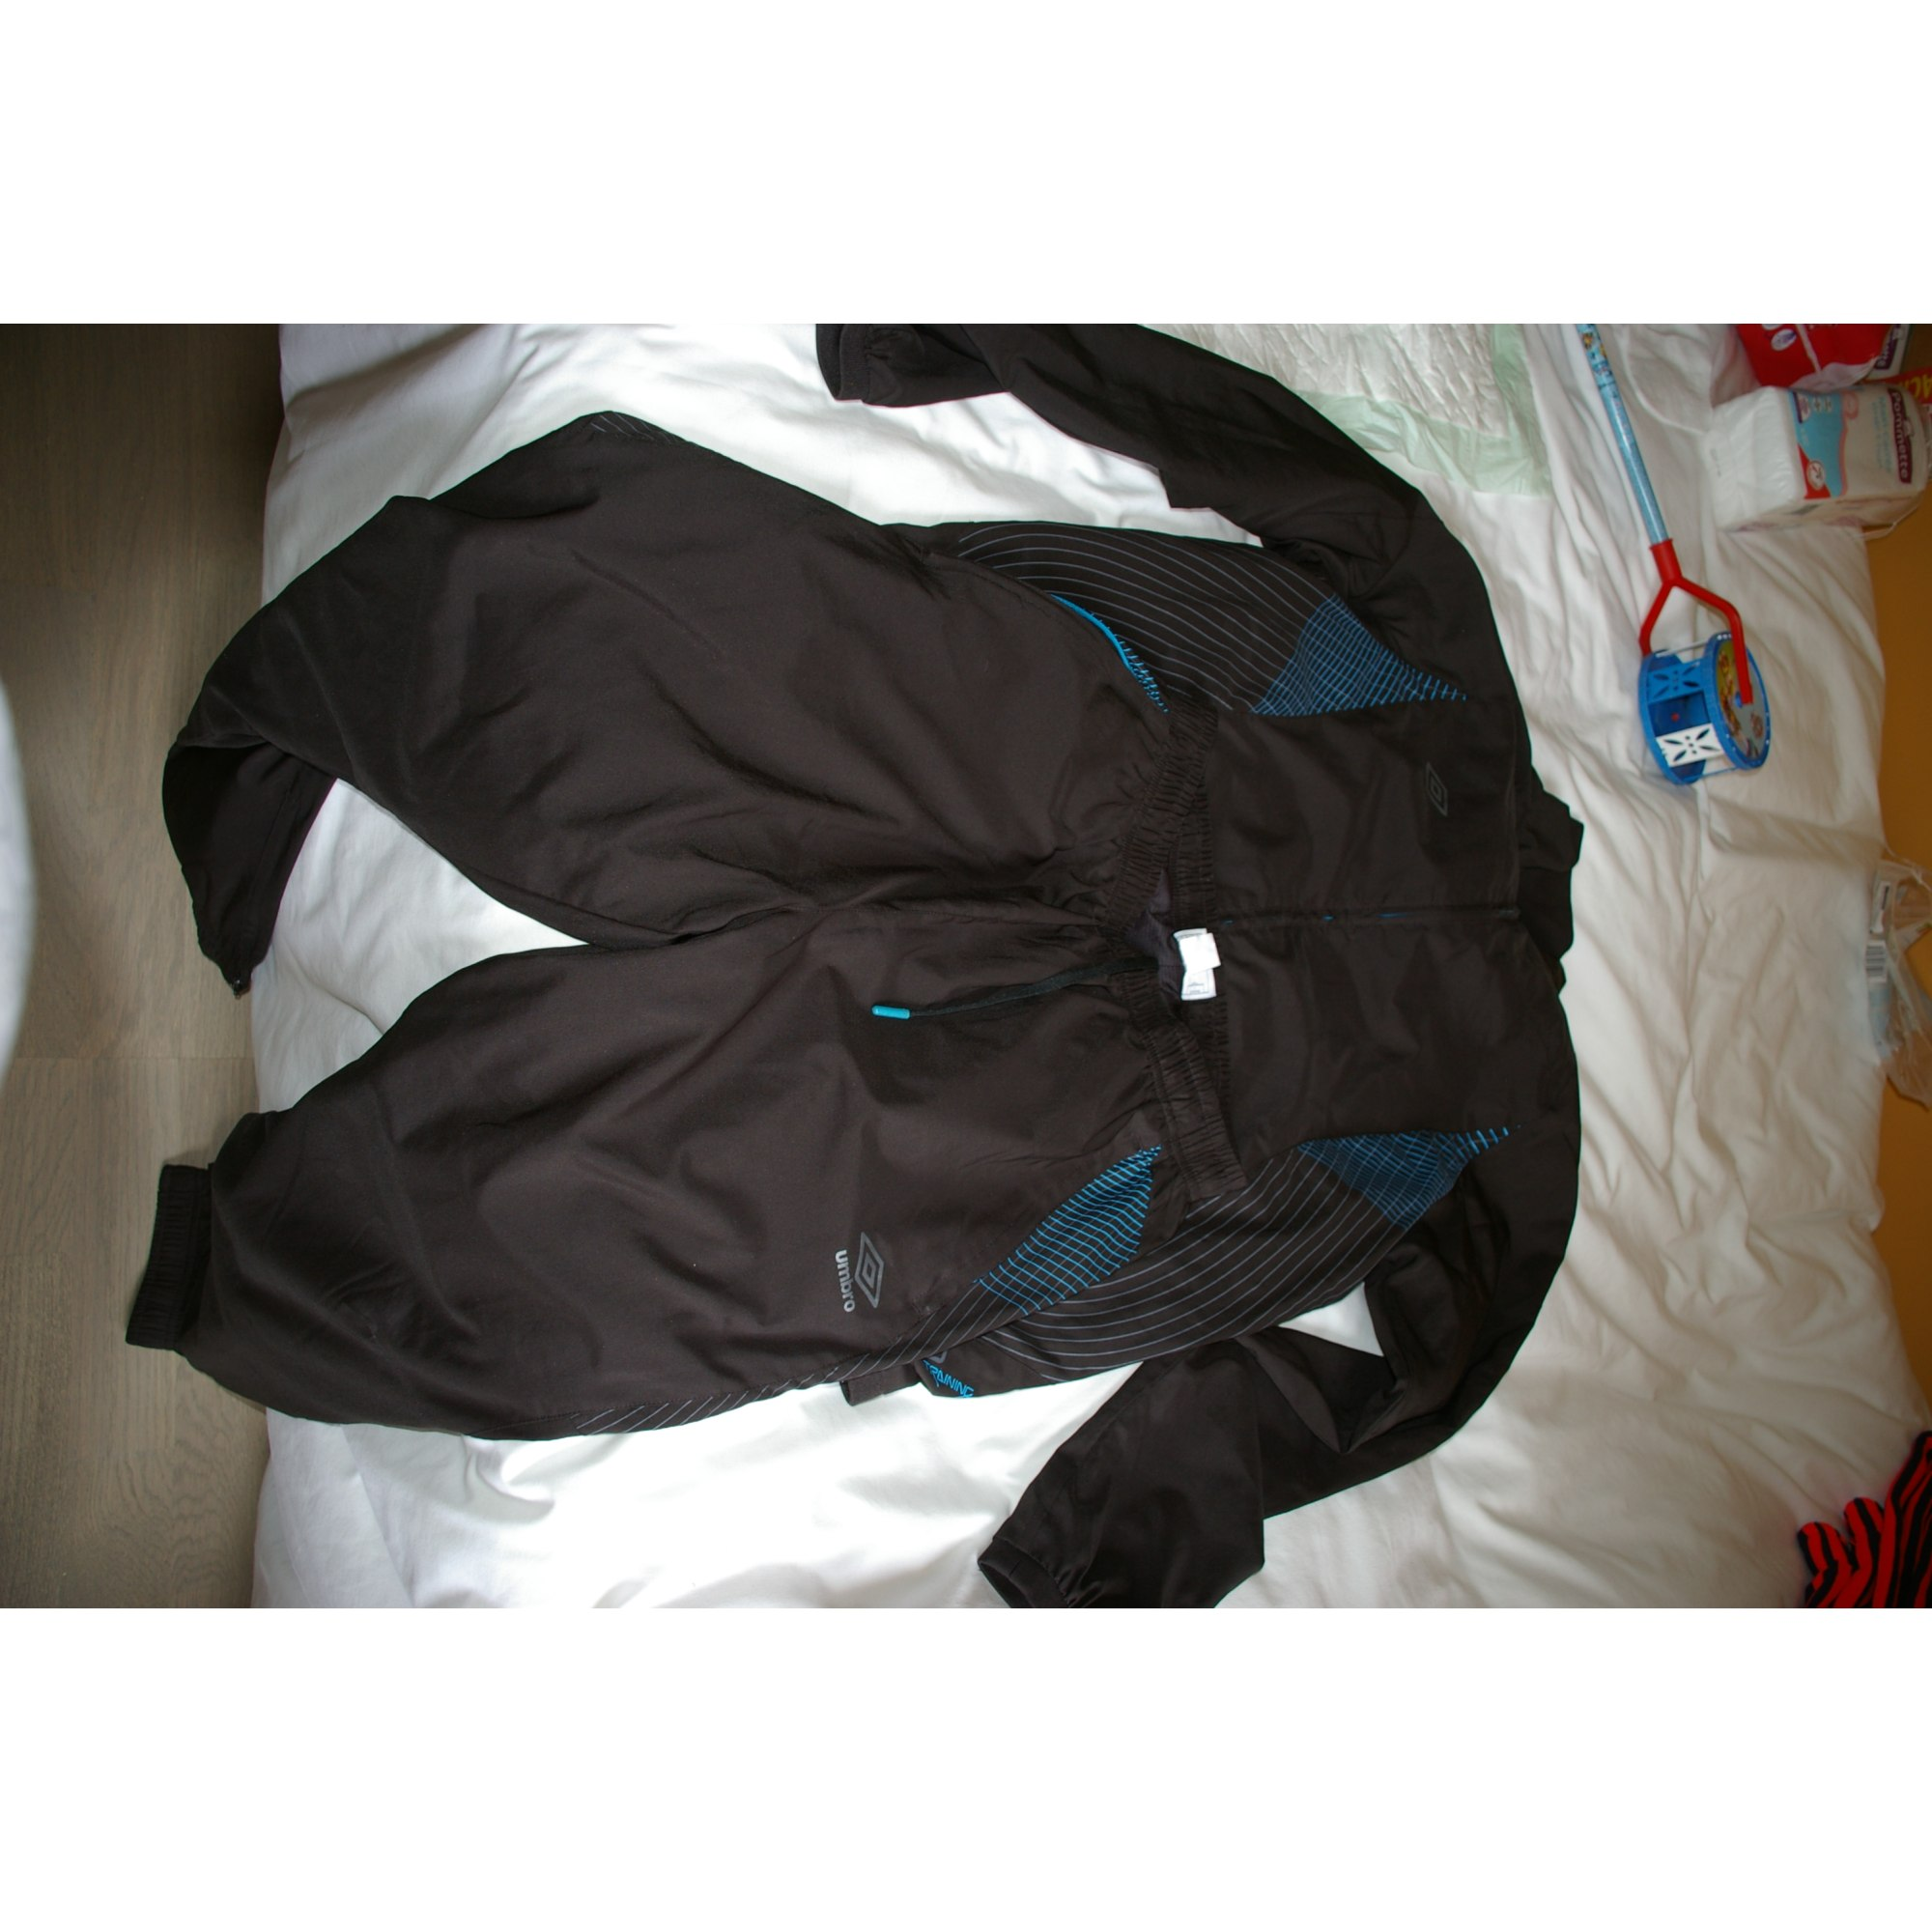 Ensemble jogging UMBRO Noir